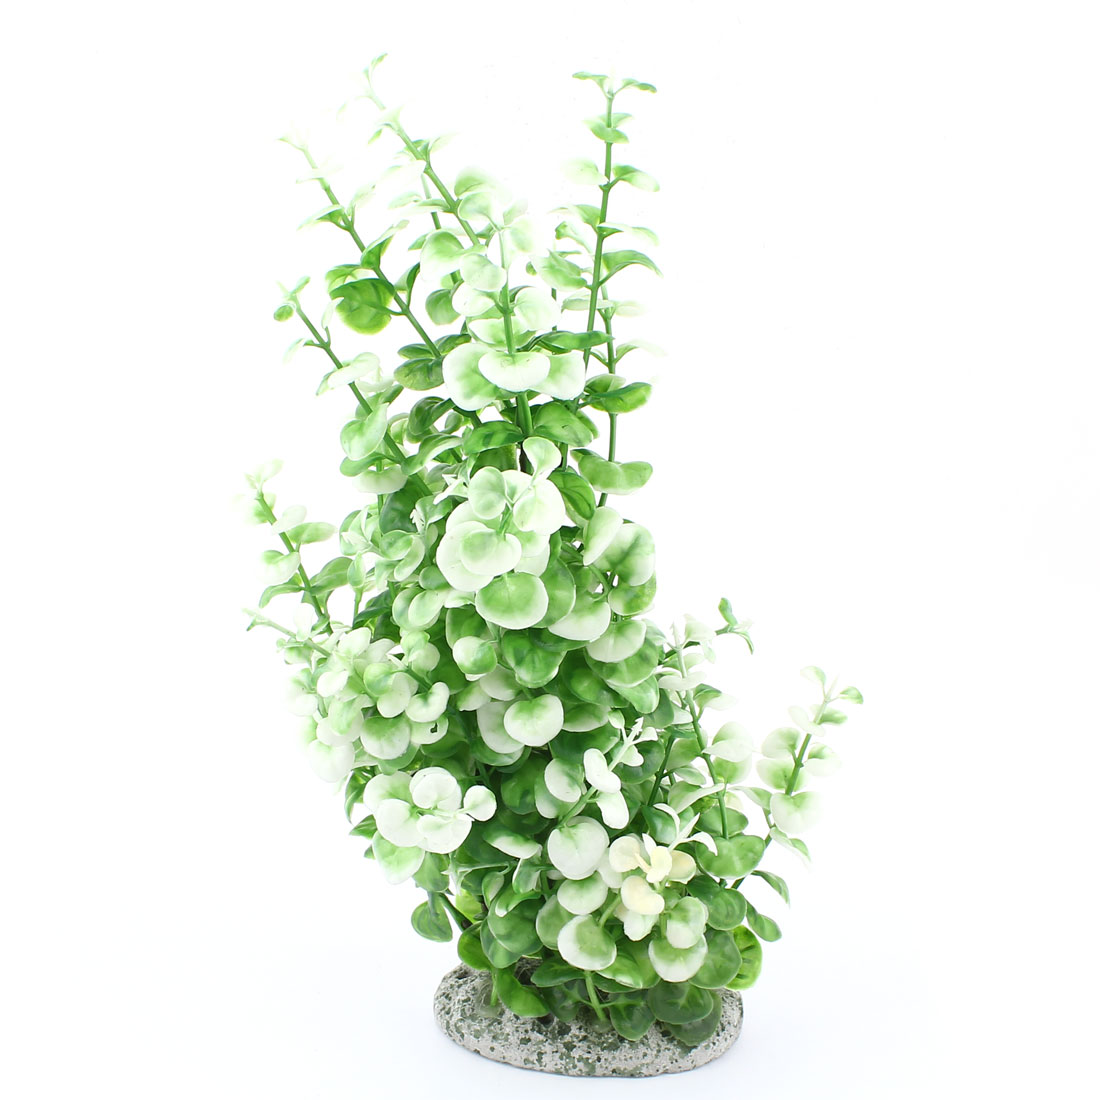 30cm High Green White Artificial Tree Water Plant Accent for Fish Tank